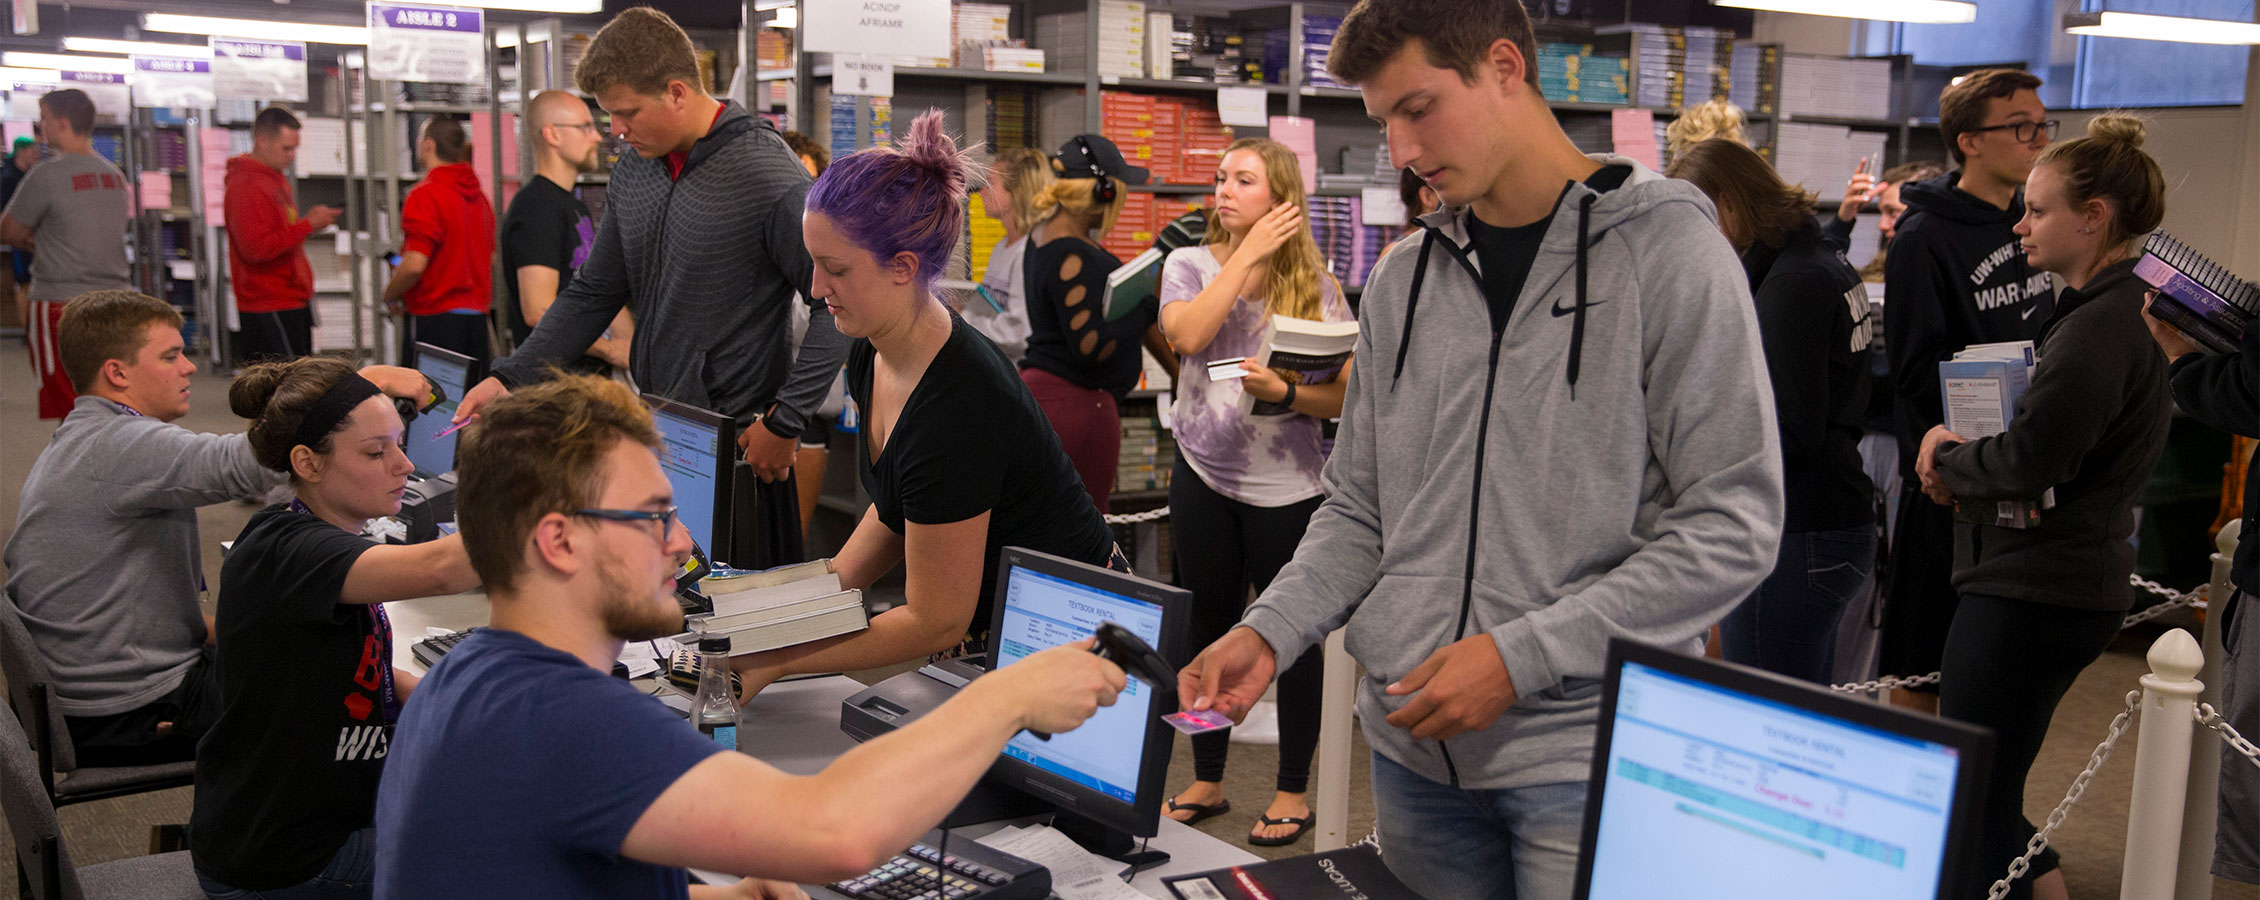 Students check out textbooks on the lower level of the UW-Whitewater bookstore.